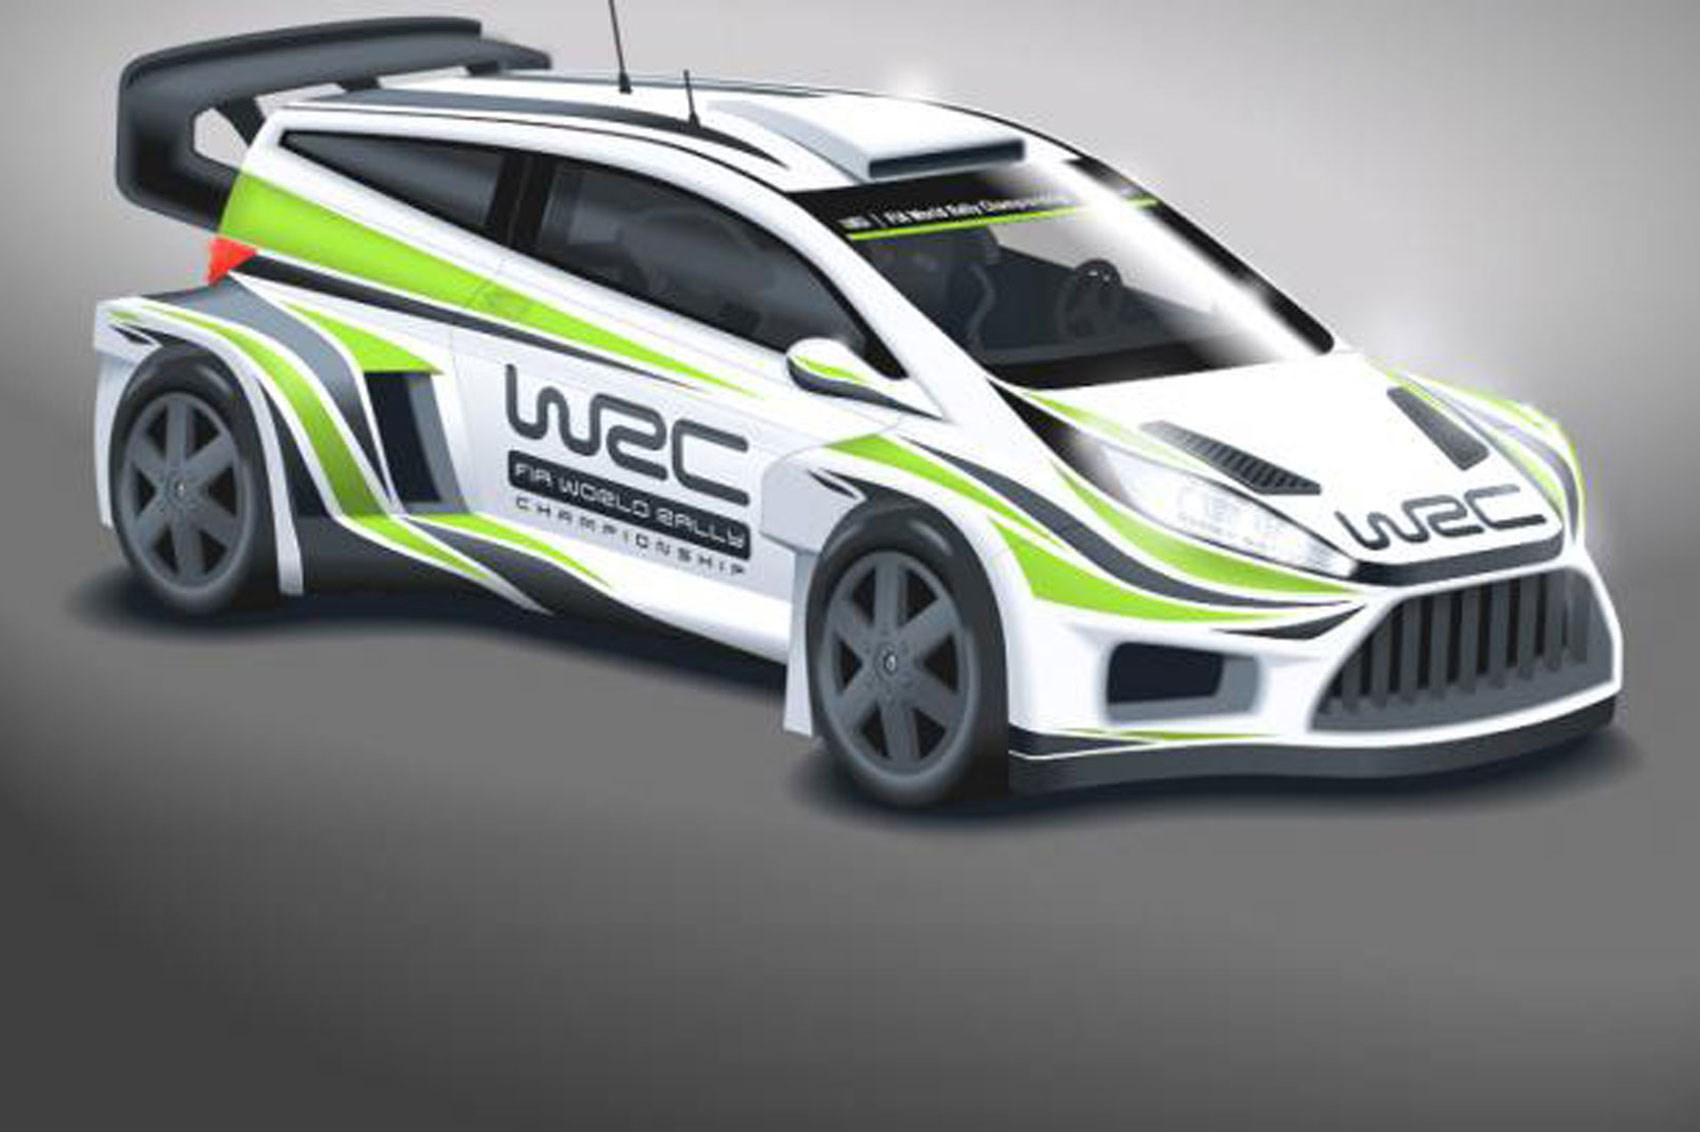 Ultrablogus  Fascinating Wild New Look For Wrc Cars In  By Car Magazine With Interesting Wrc Cars Will Get Wider Bodies Bigger Wings And More Power For  With Cute  Mazda Cx  Interior Also  Hyundai Elantra Interior In Addition Interior Nissan Terrano And Buick Enclave  Interior As Well As  Wrx Sti Interior Additionally Interior Honda Crv  From Carmagazinecouk With Ultrablogus  Interesting Wild New Look For Wrc Cars In  By Car Magazine With Cute Wrc Cars Will Get Wider Bodies Bigger Wings And More Power For  And Fascinating  Mazda Cx  Interior Also  Hyundai Elantra Interior In Addition Interior Nissan Terrano From Carmagazinecouk